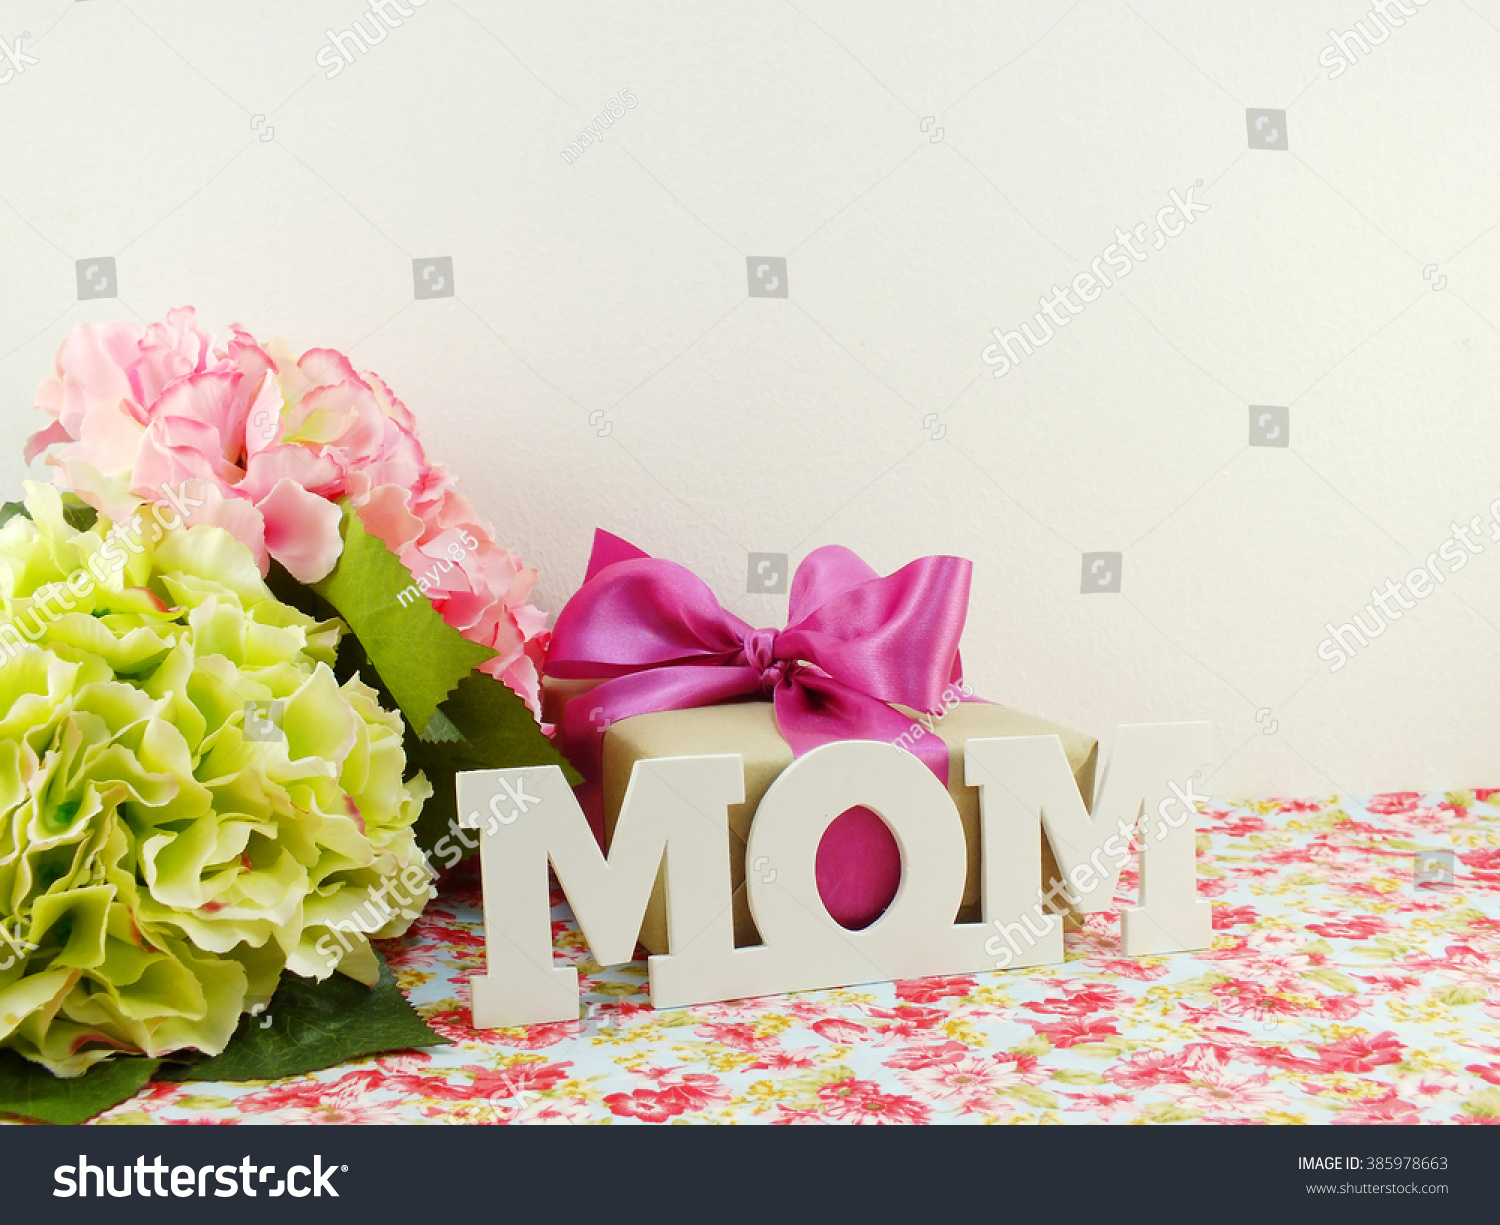 Gifts beautiful bouquet flowers mom mother stock photo edit now gifts and beautiful bouquet of flowers for mom for mother day or birthday izmirmasajfo